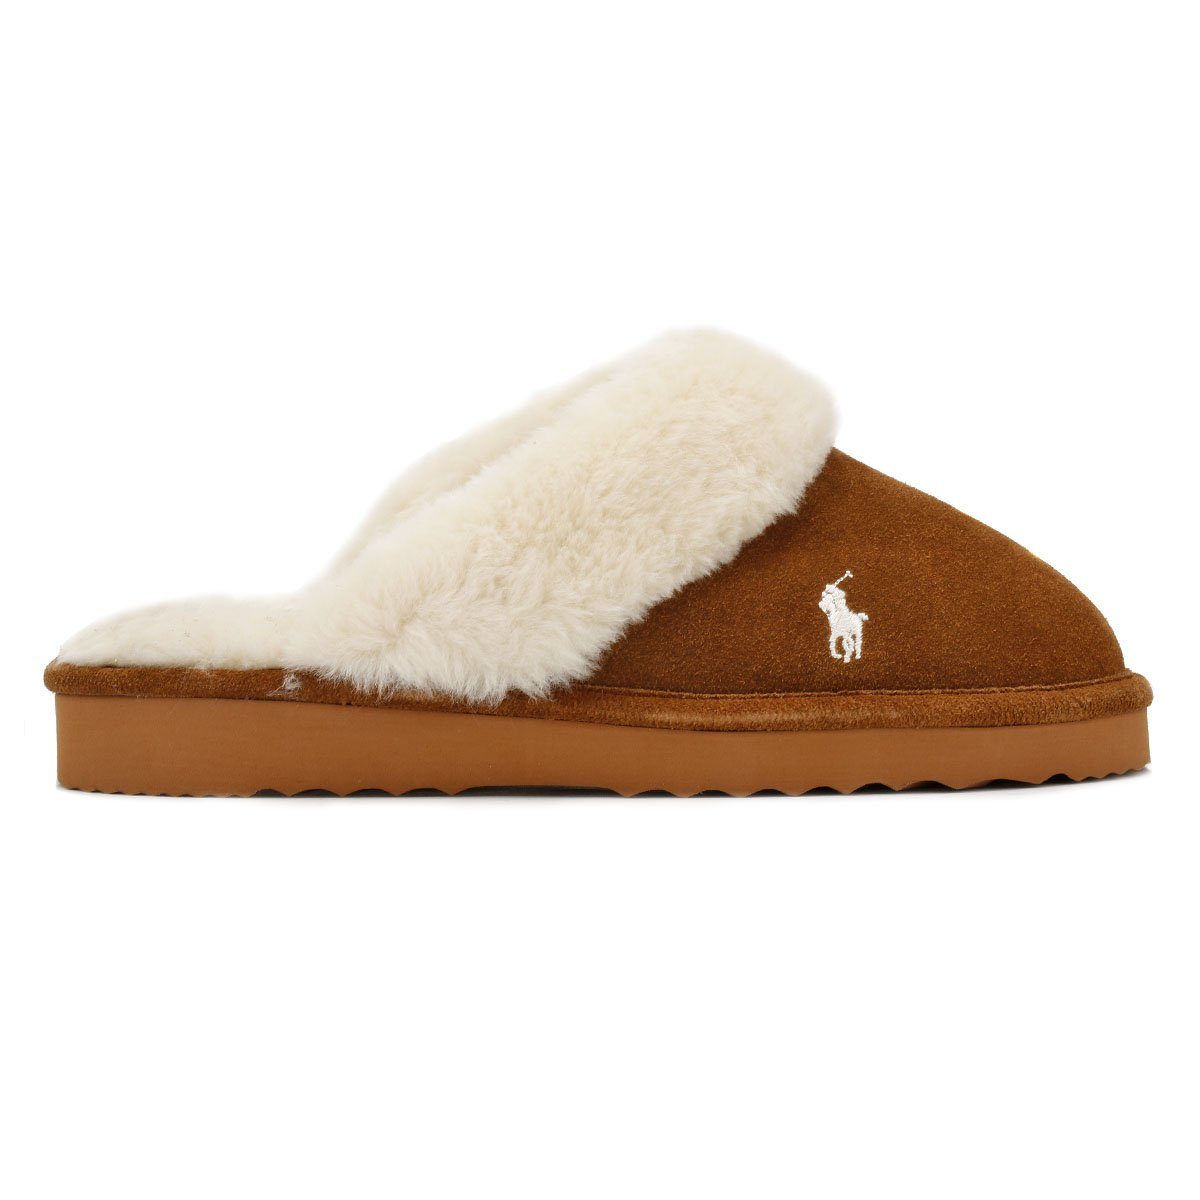 8f9adc03db3a Ralph Lauren Womens Snuff Tan Cream Charlotte Slippers-UK 3  Amazon.co.uk   Shoes   Bags